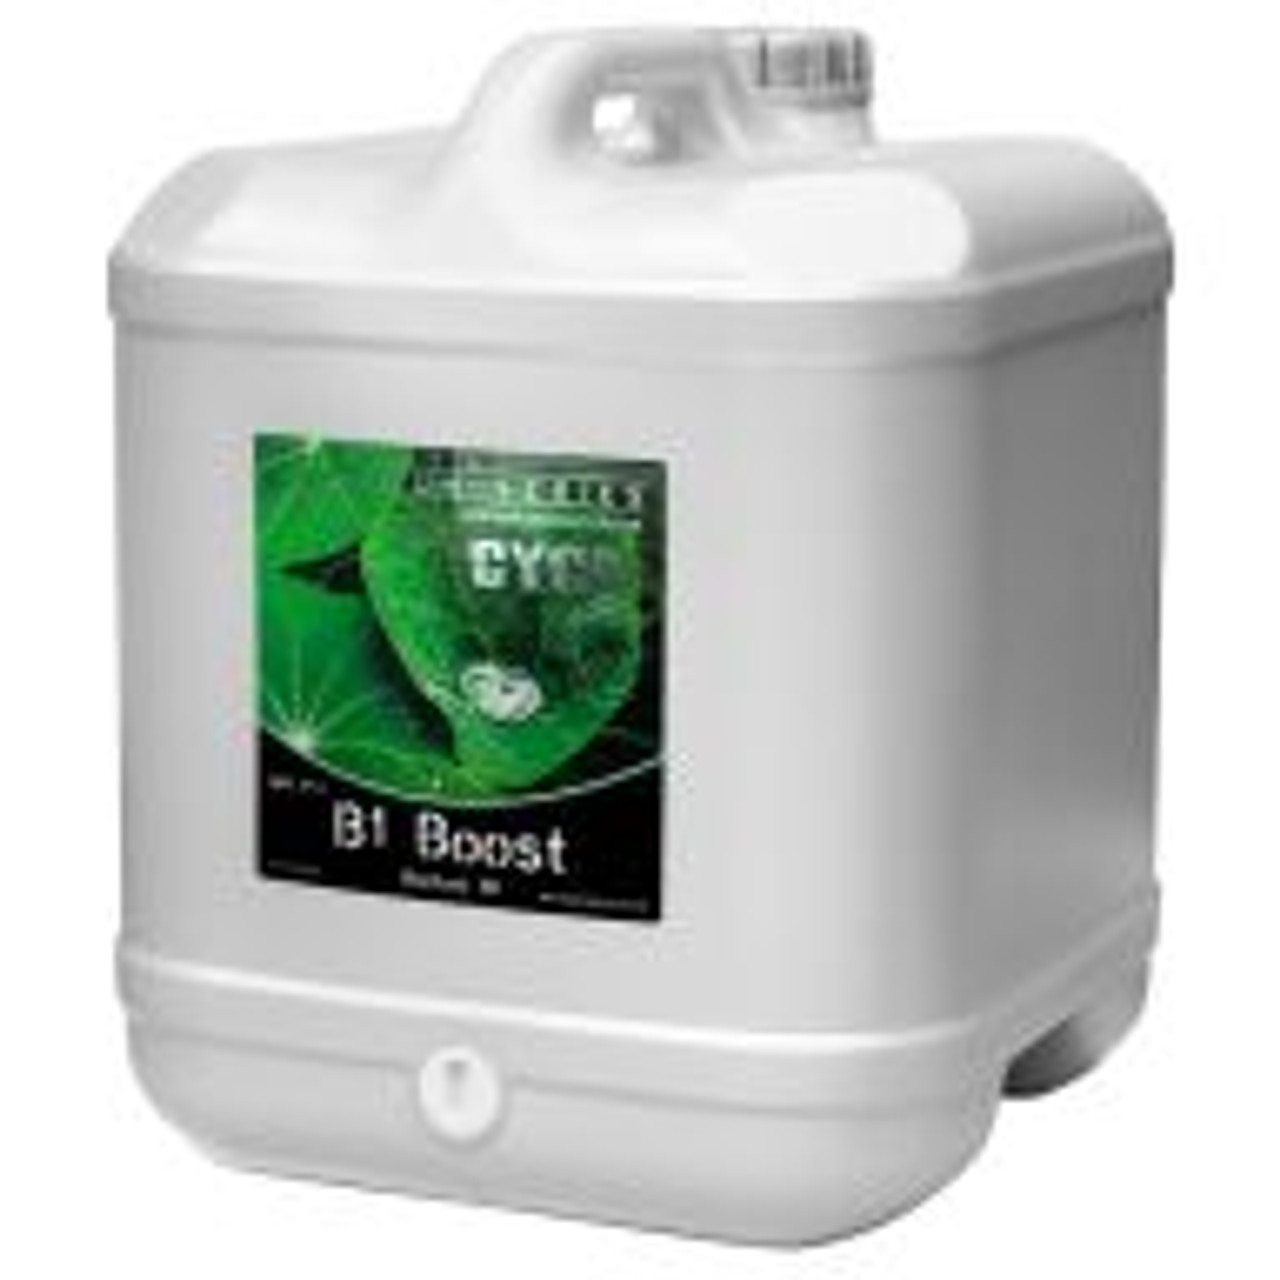 """Cyco B1 Boost helps to stimulate the growth of roots at any time in a plant's life cycle. B1 Boost is seen as an """"insurance policy,"""" as it is difficult to determine if an underperforming plant is capable of producing B1 in sufficient amounts. The phosphorus in B1 Boost aids in the process of photosynthesis, the formation of oils, sugars and starches, and it encourages rapid growth and blooming."""